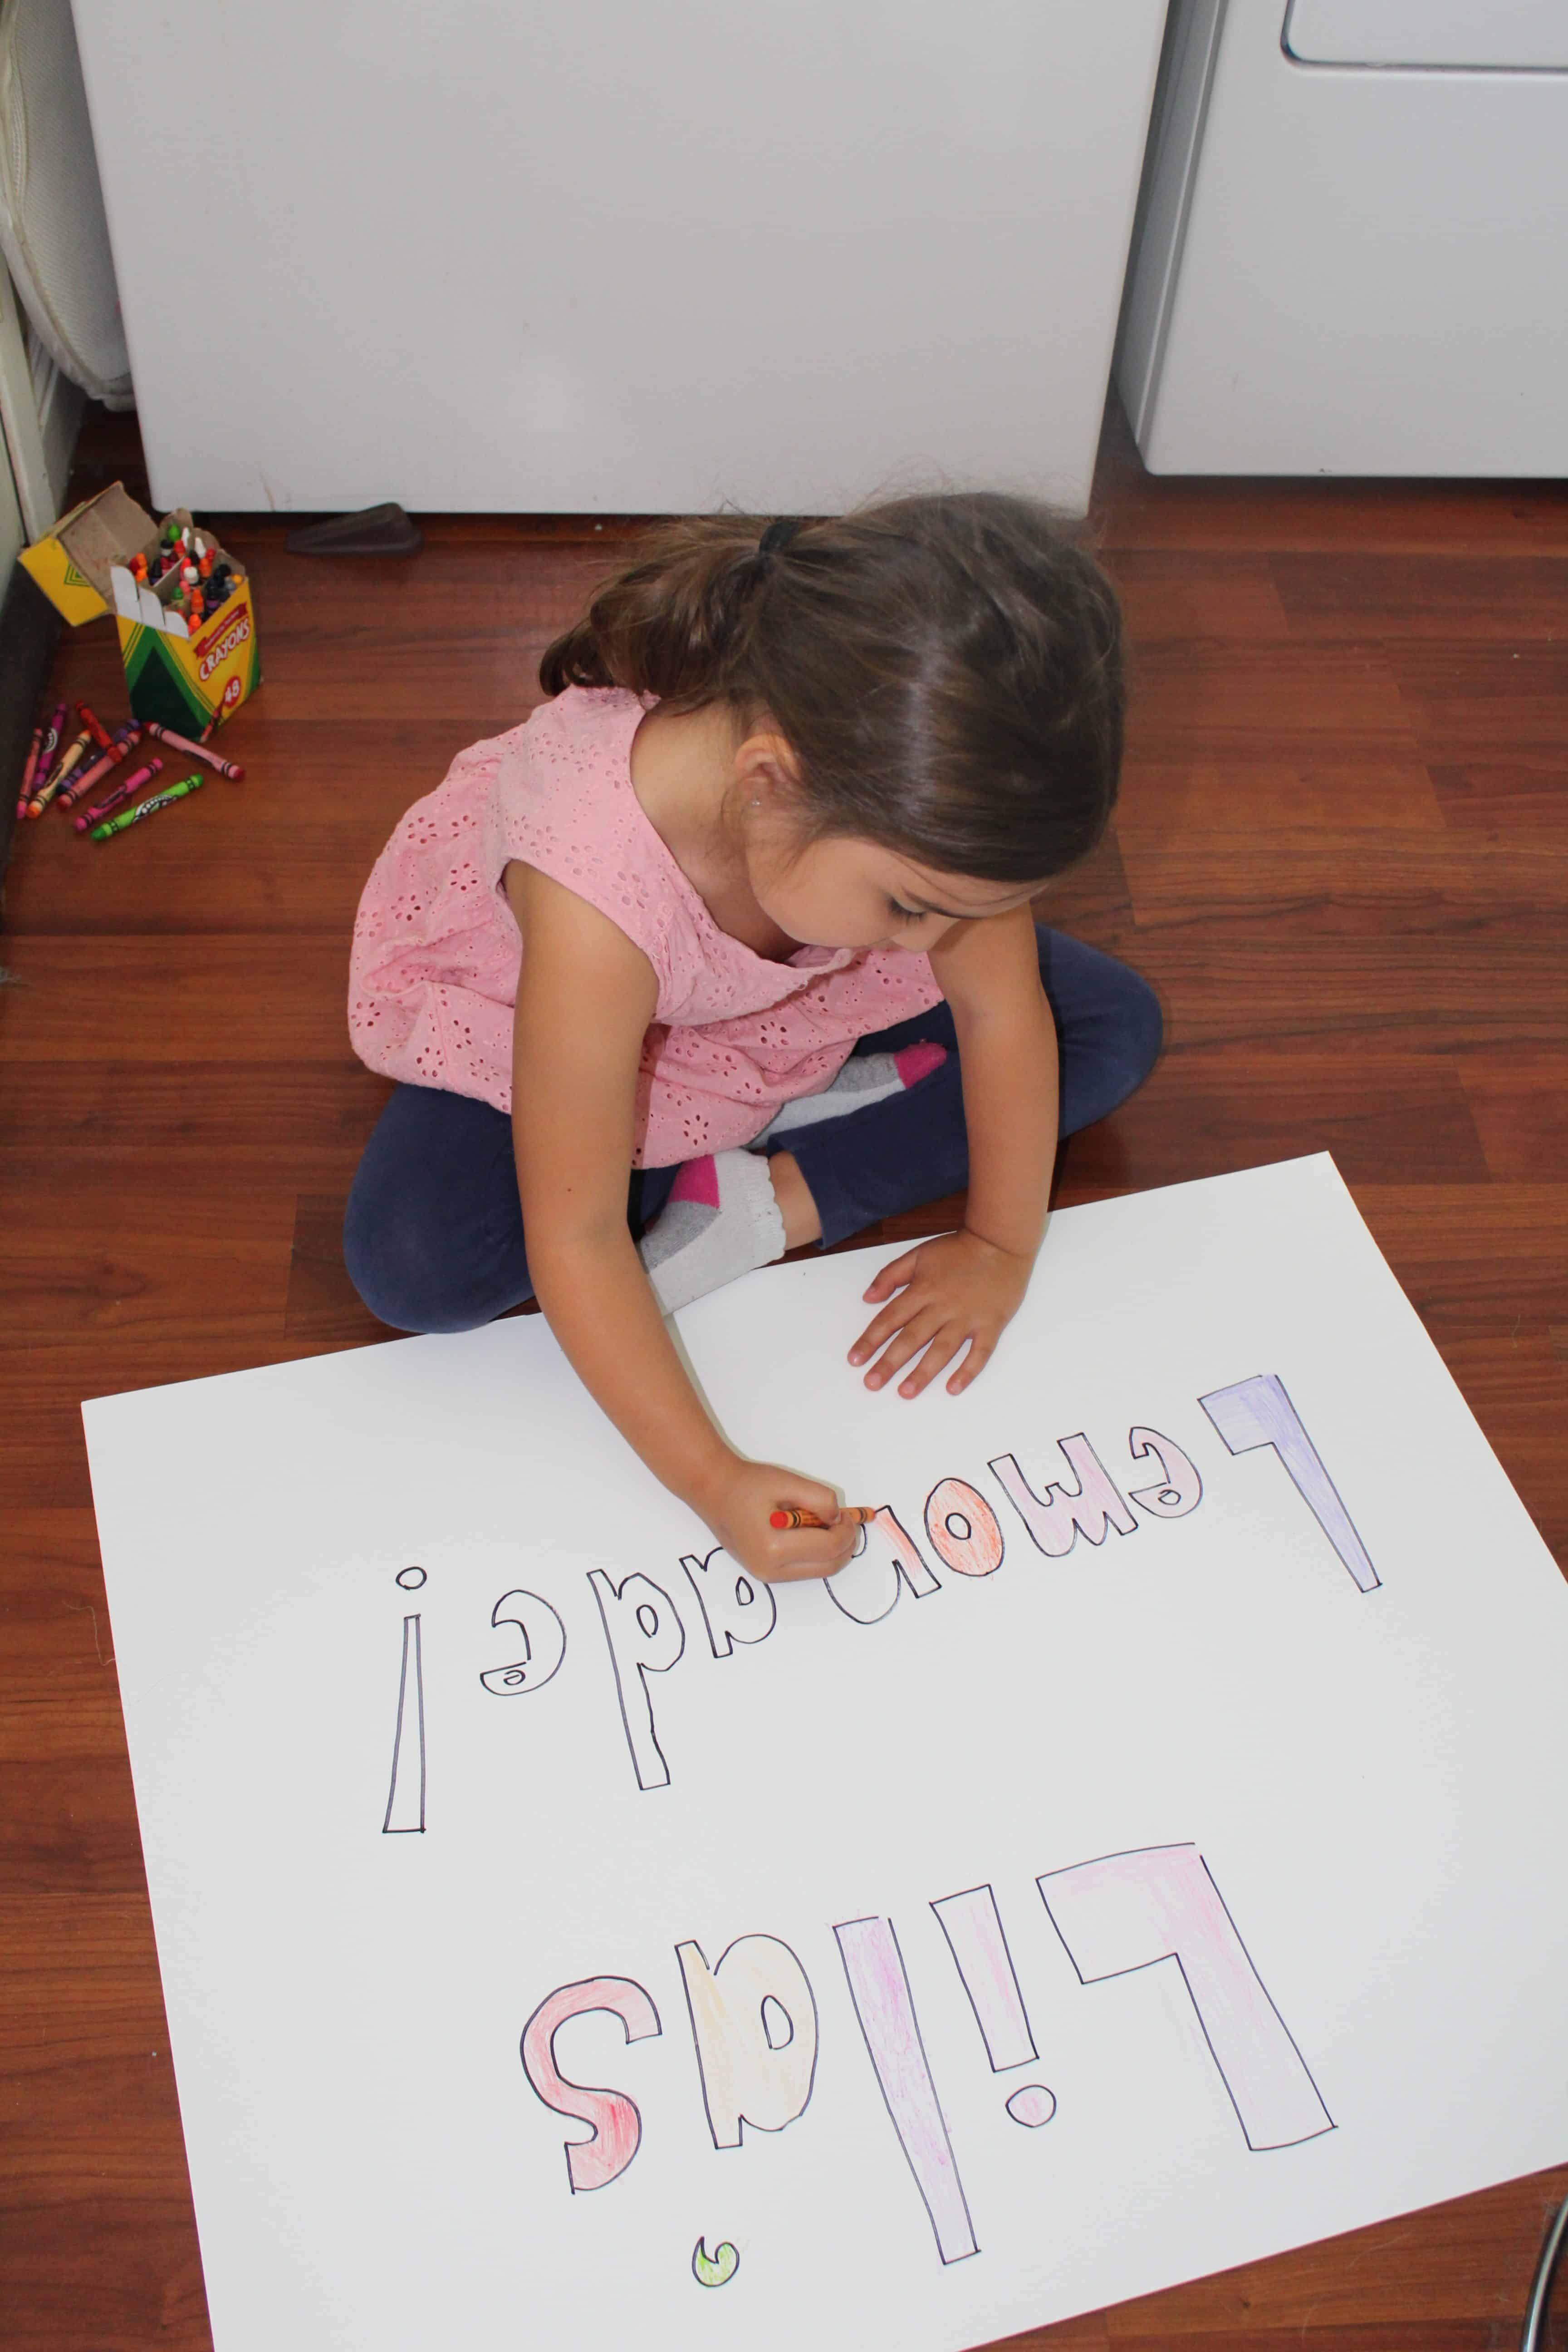 Child coloring lemonade stand sign to advertise